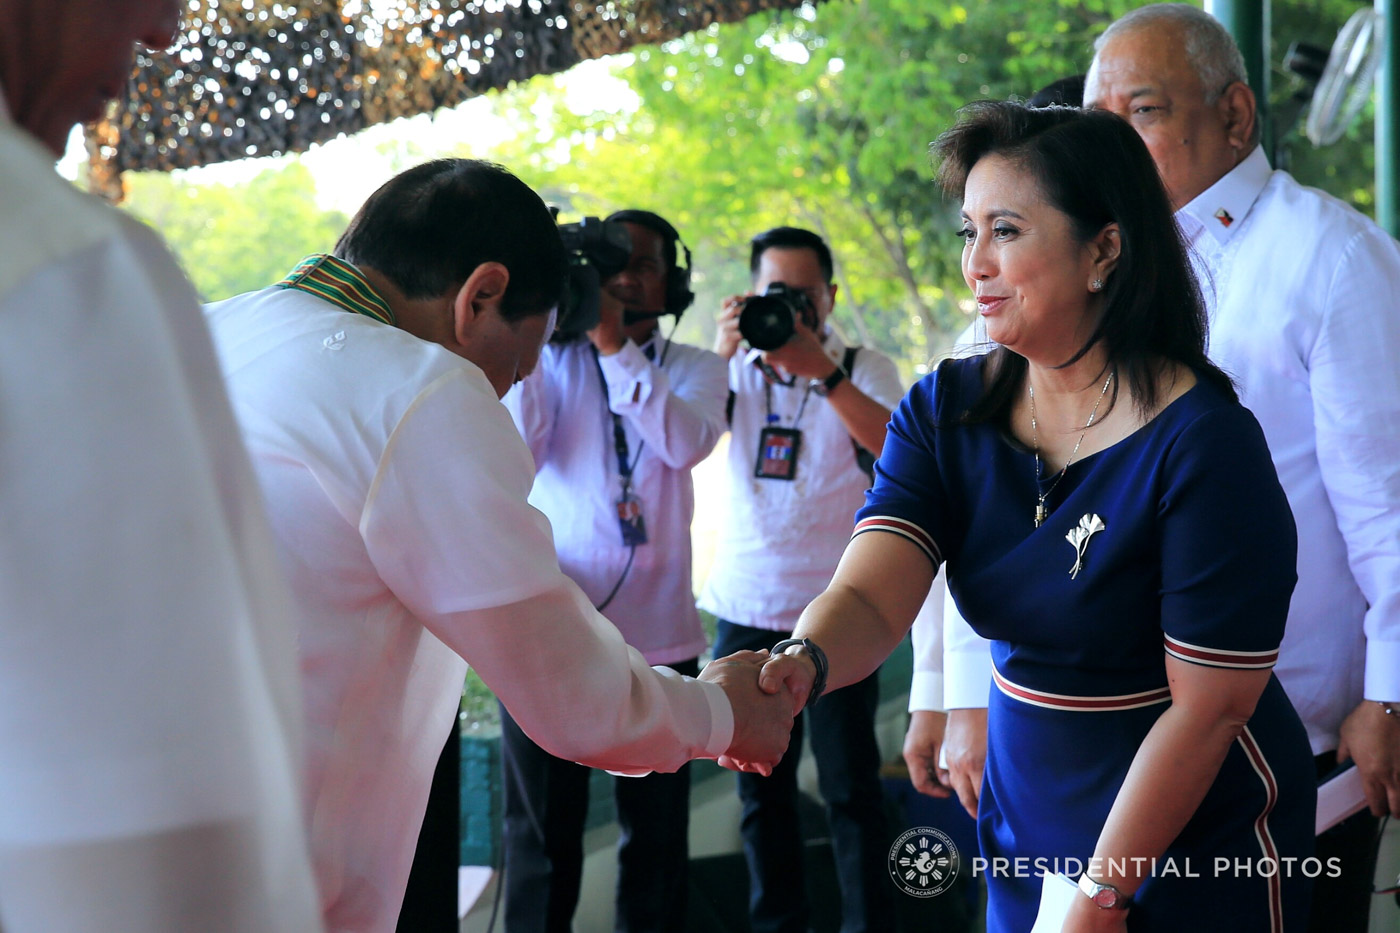 PLEASANTIRES. President Rodrigo Duterte gives a cordial greeting to Vice President Maria Leonor Robredo during the 121st Founding Anniversary of the Philippine Army.